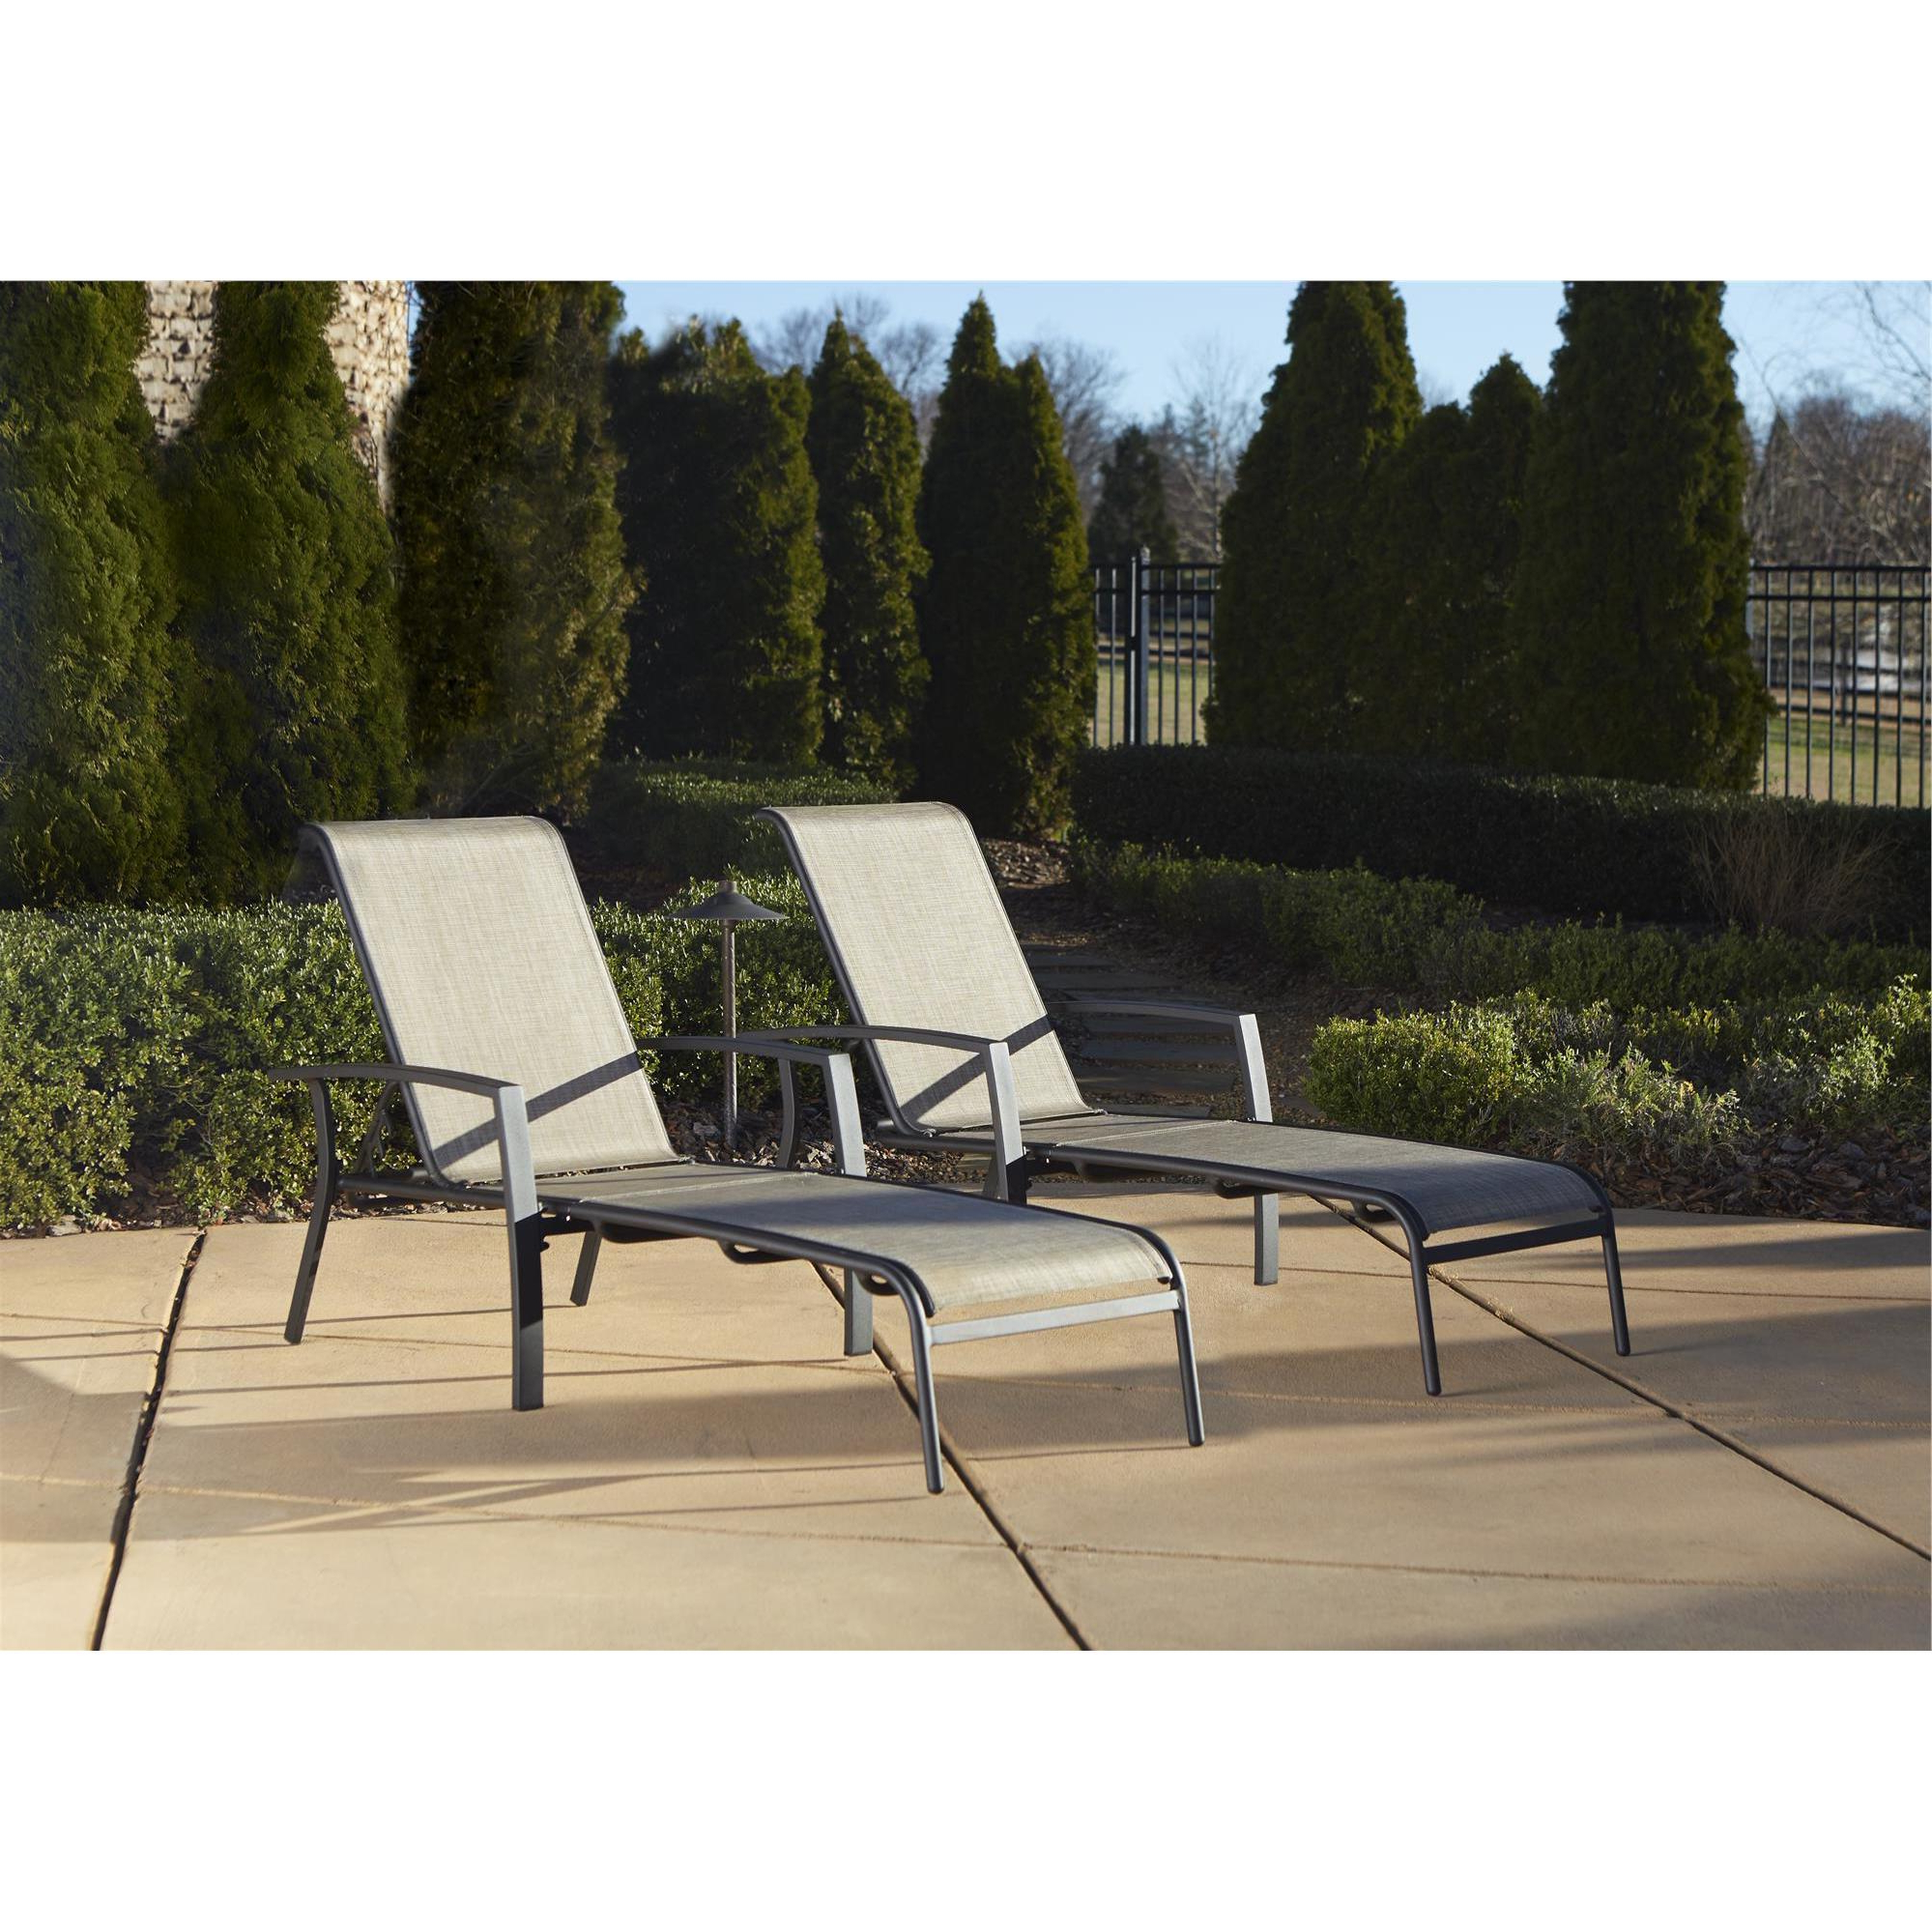 Cosco Outdoor Aluminum Chaise Lounge Chair (set Of 2) With Regard To Most Popular Cosco Outdoor Aluminum Chaise Lounge Chairs (View 3 of 25)